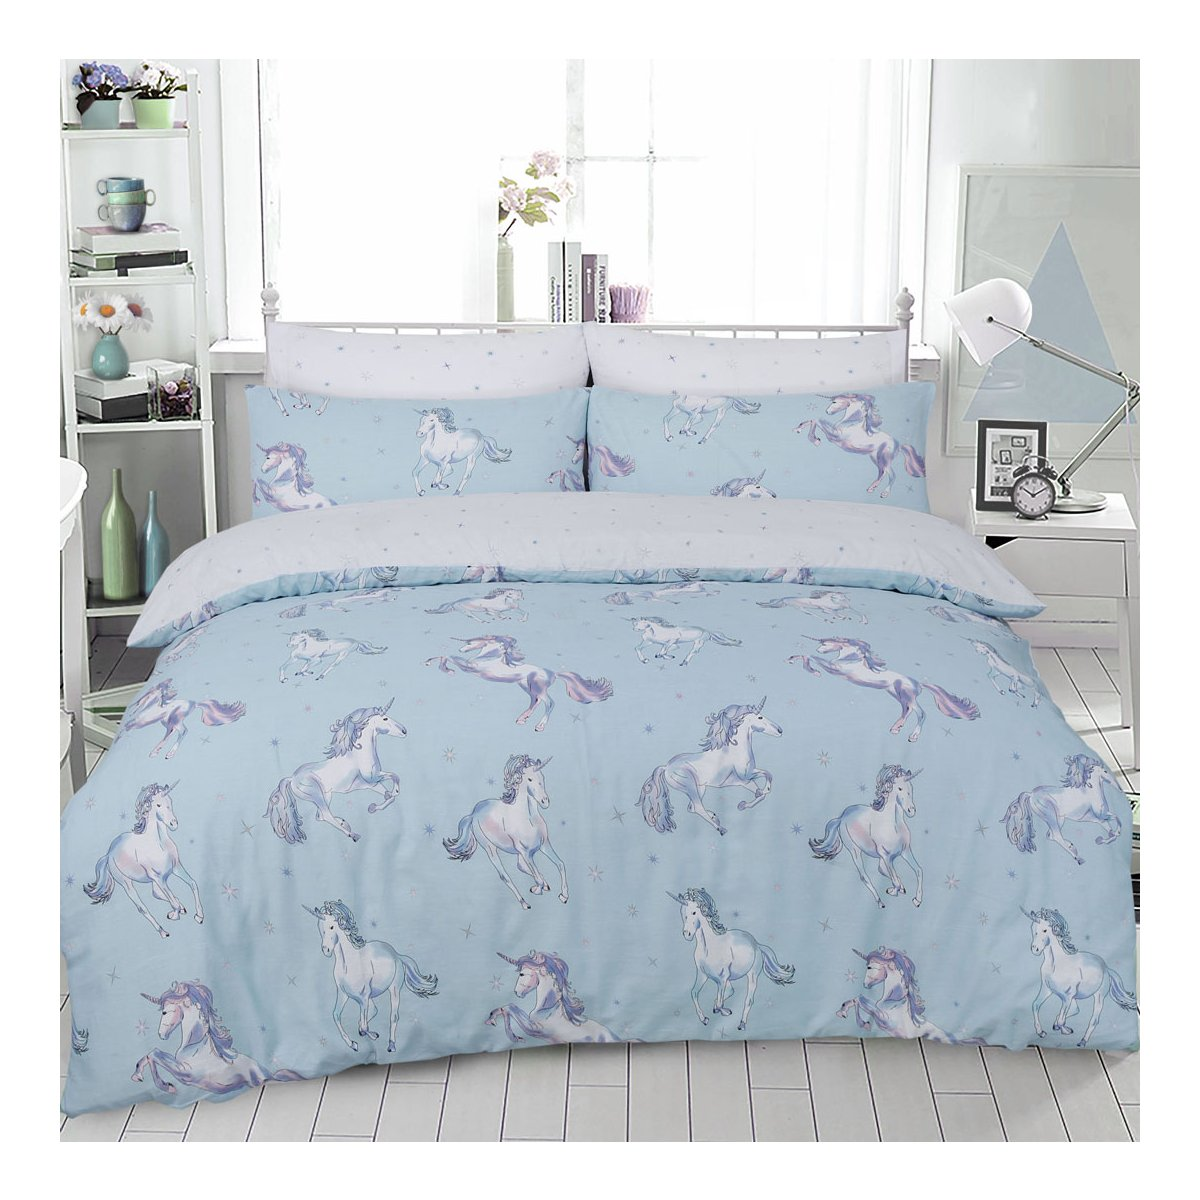 Paintly Unicorn Duckegg Bedding - Reversible Duvet Cover and Pillowcase Set